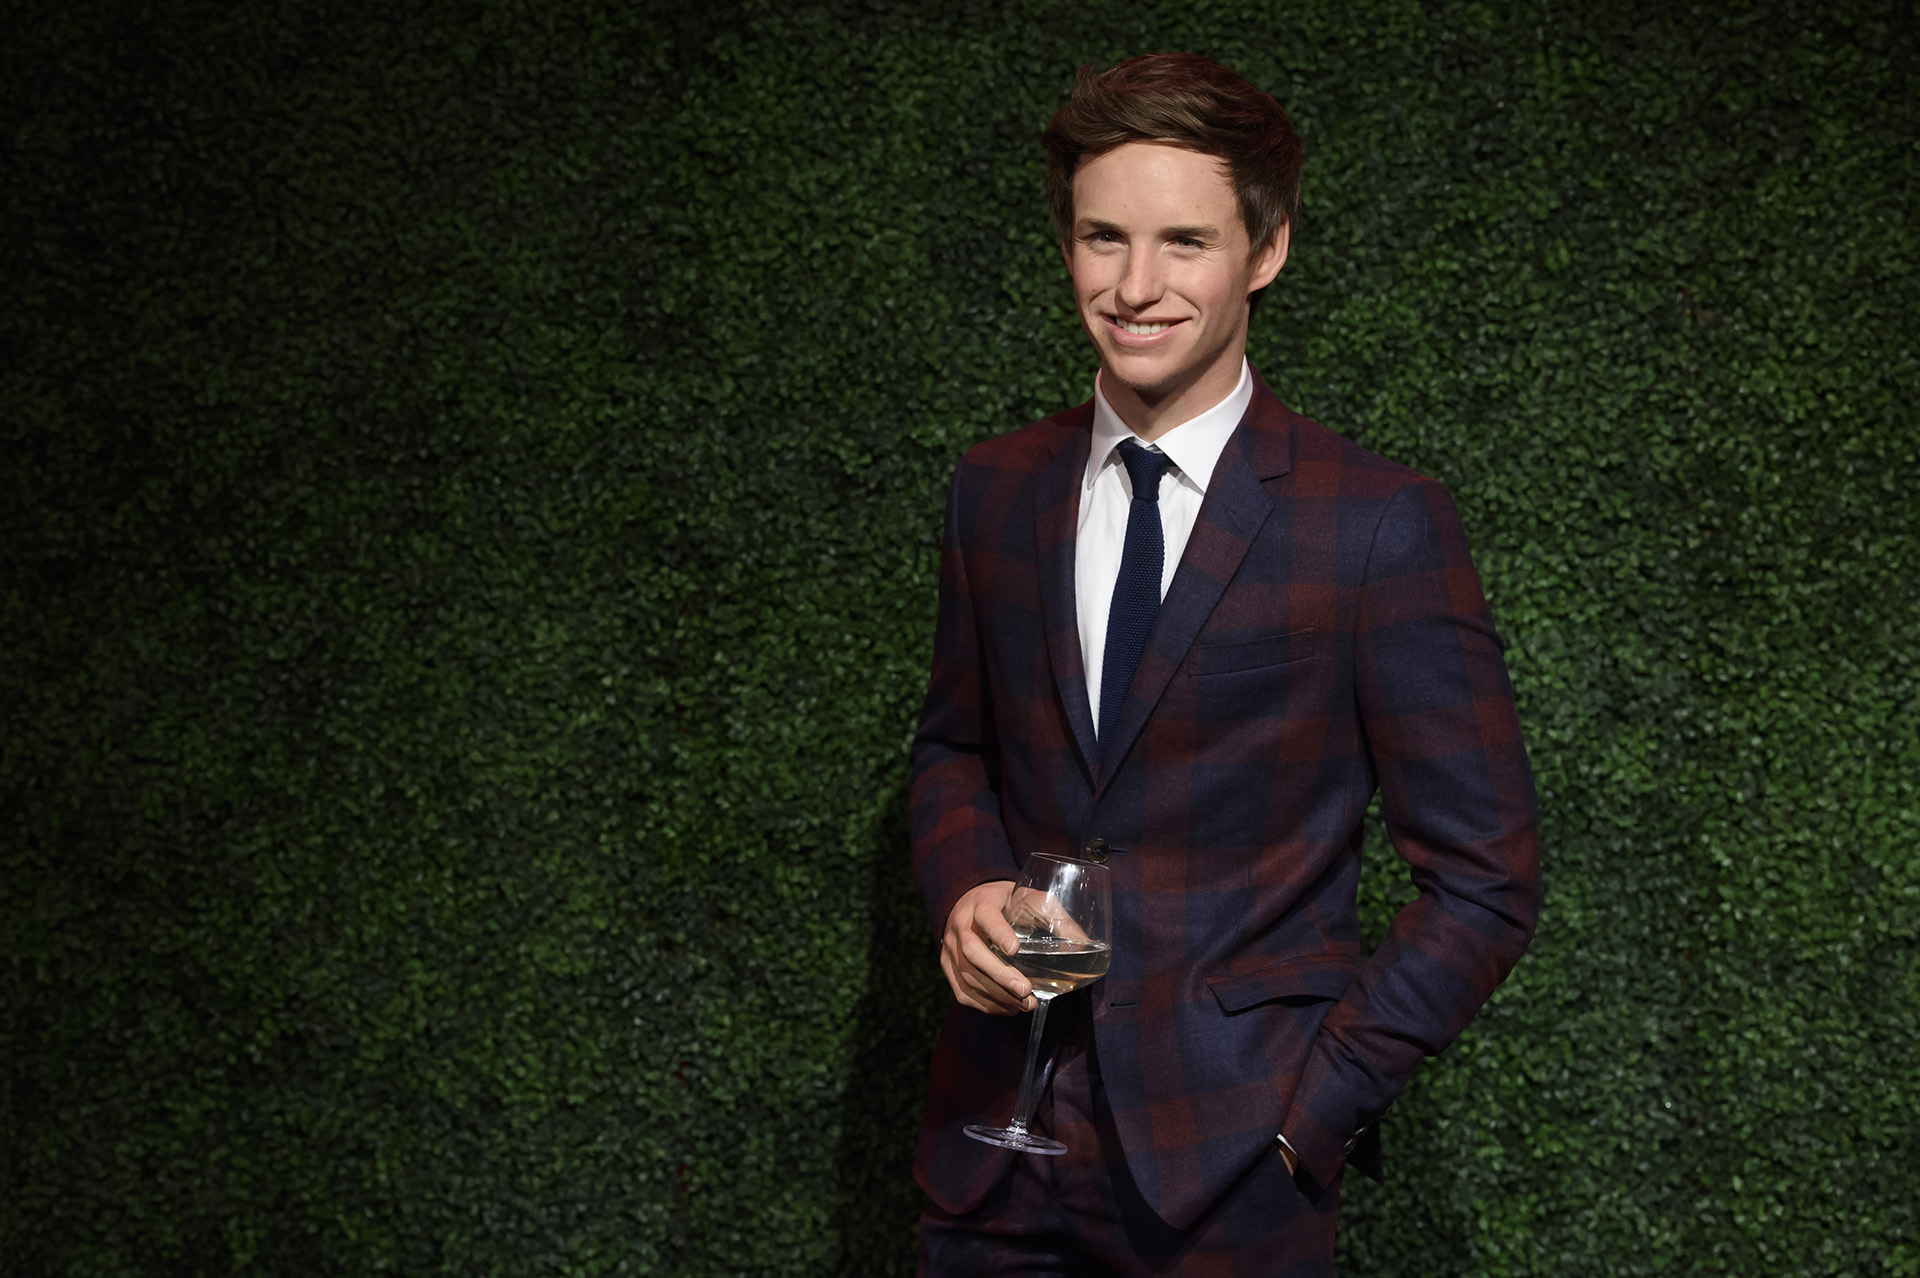 Eddie Redmayne figure holding a glass of wine at Madame Tussauds